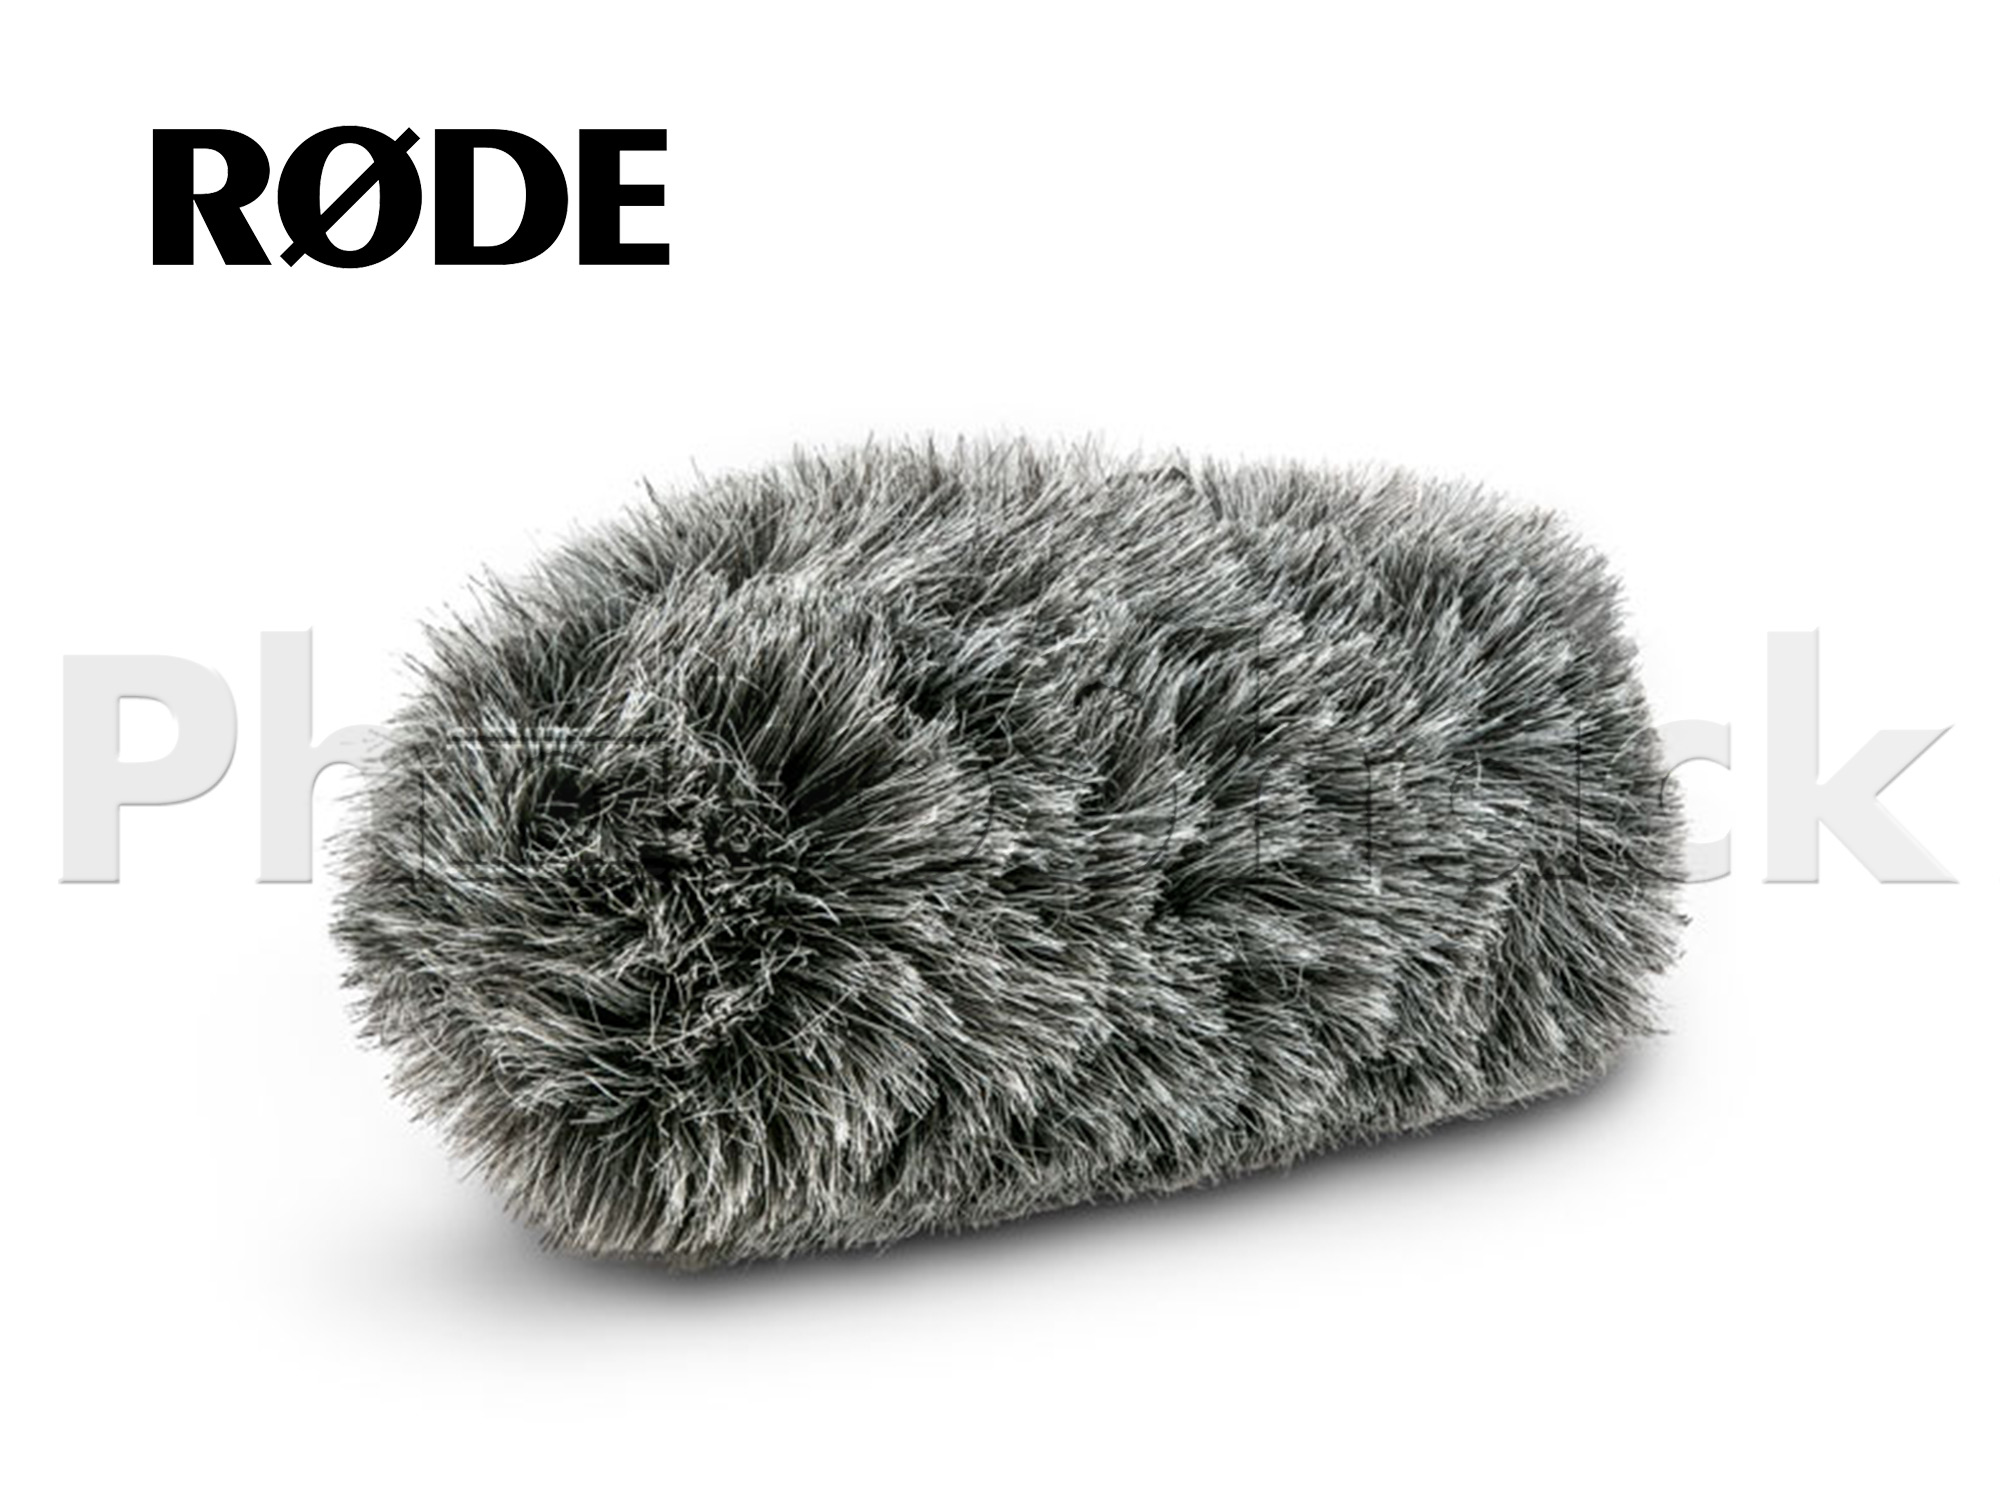 Rode DeadCat Wind Shield for VideoMic Pro+